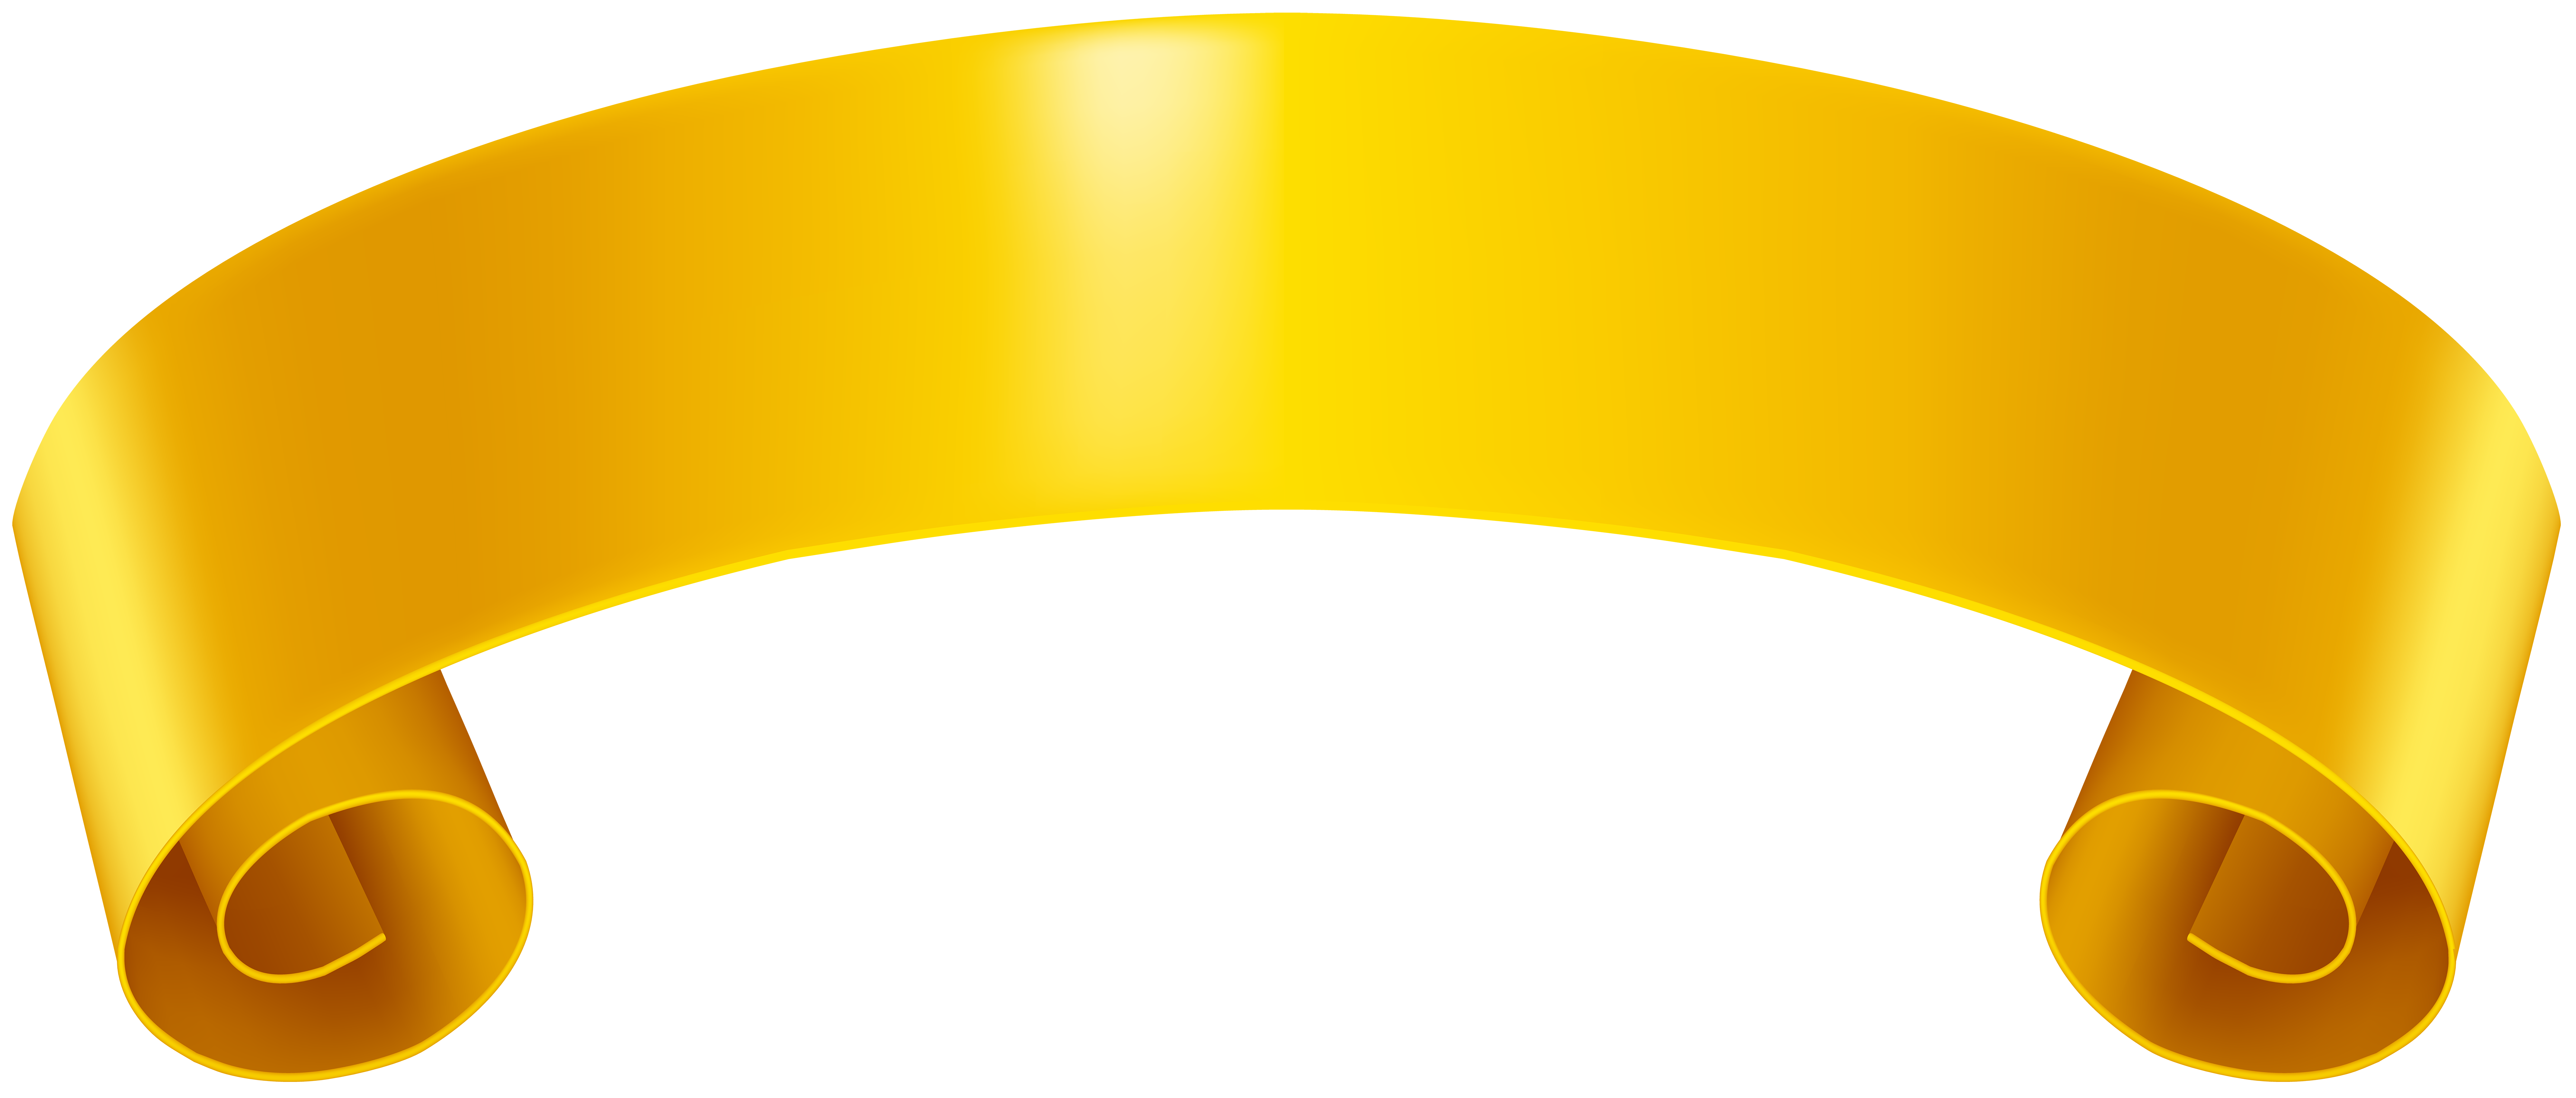 Banner clip. Yellow art png image